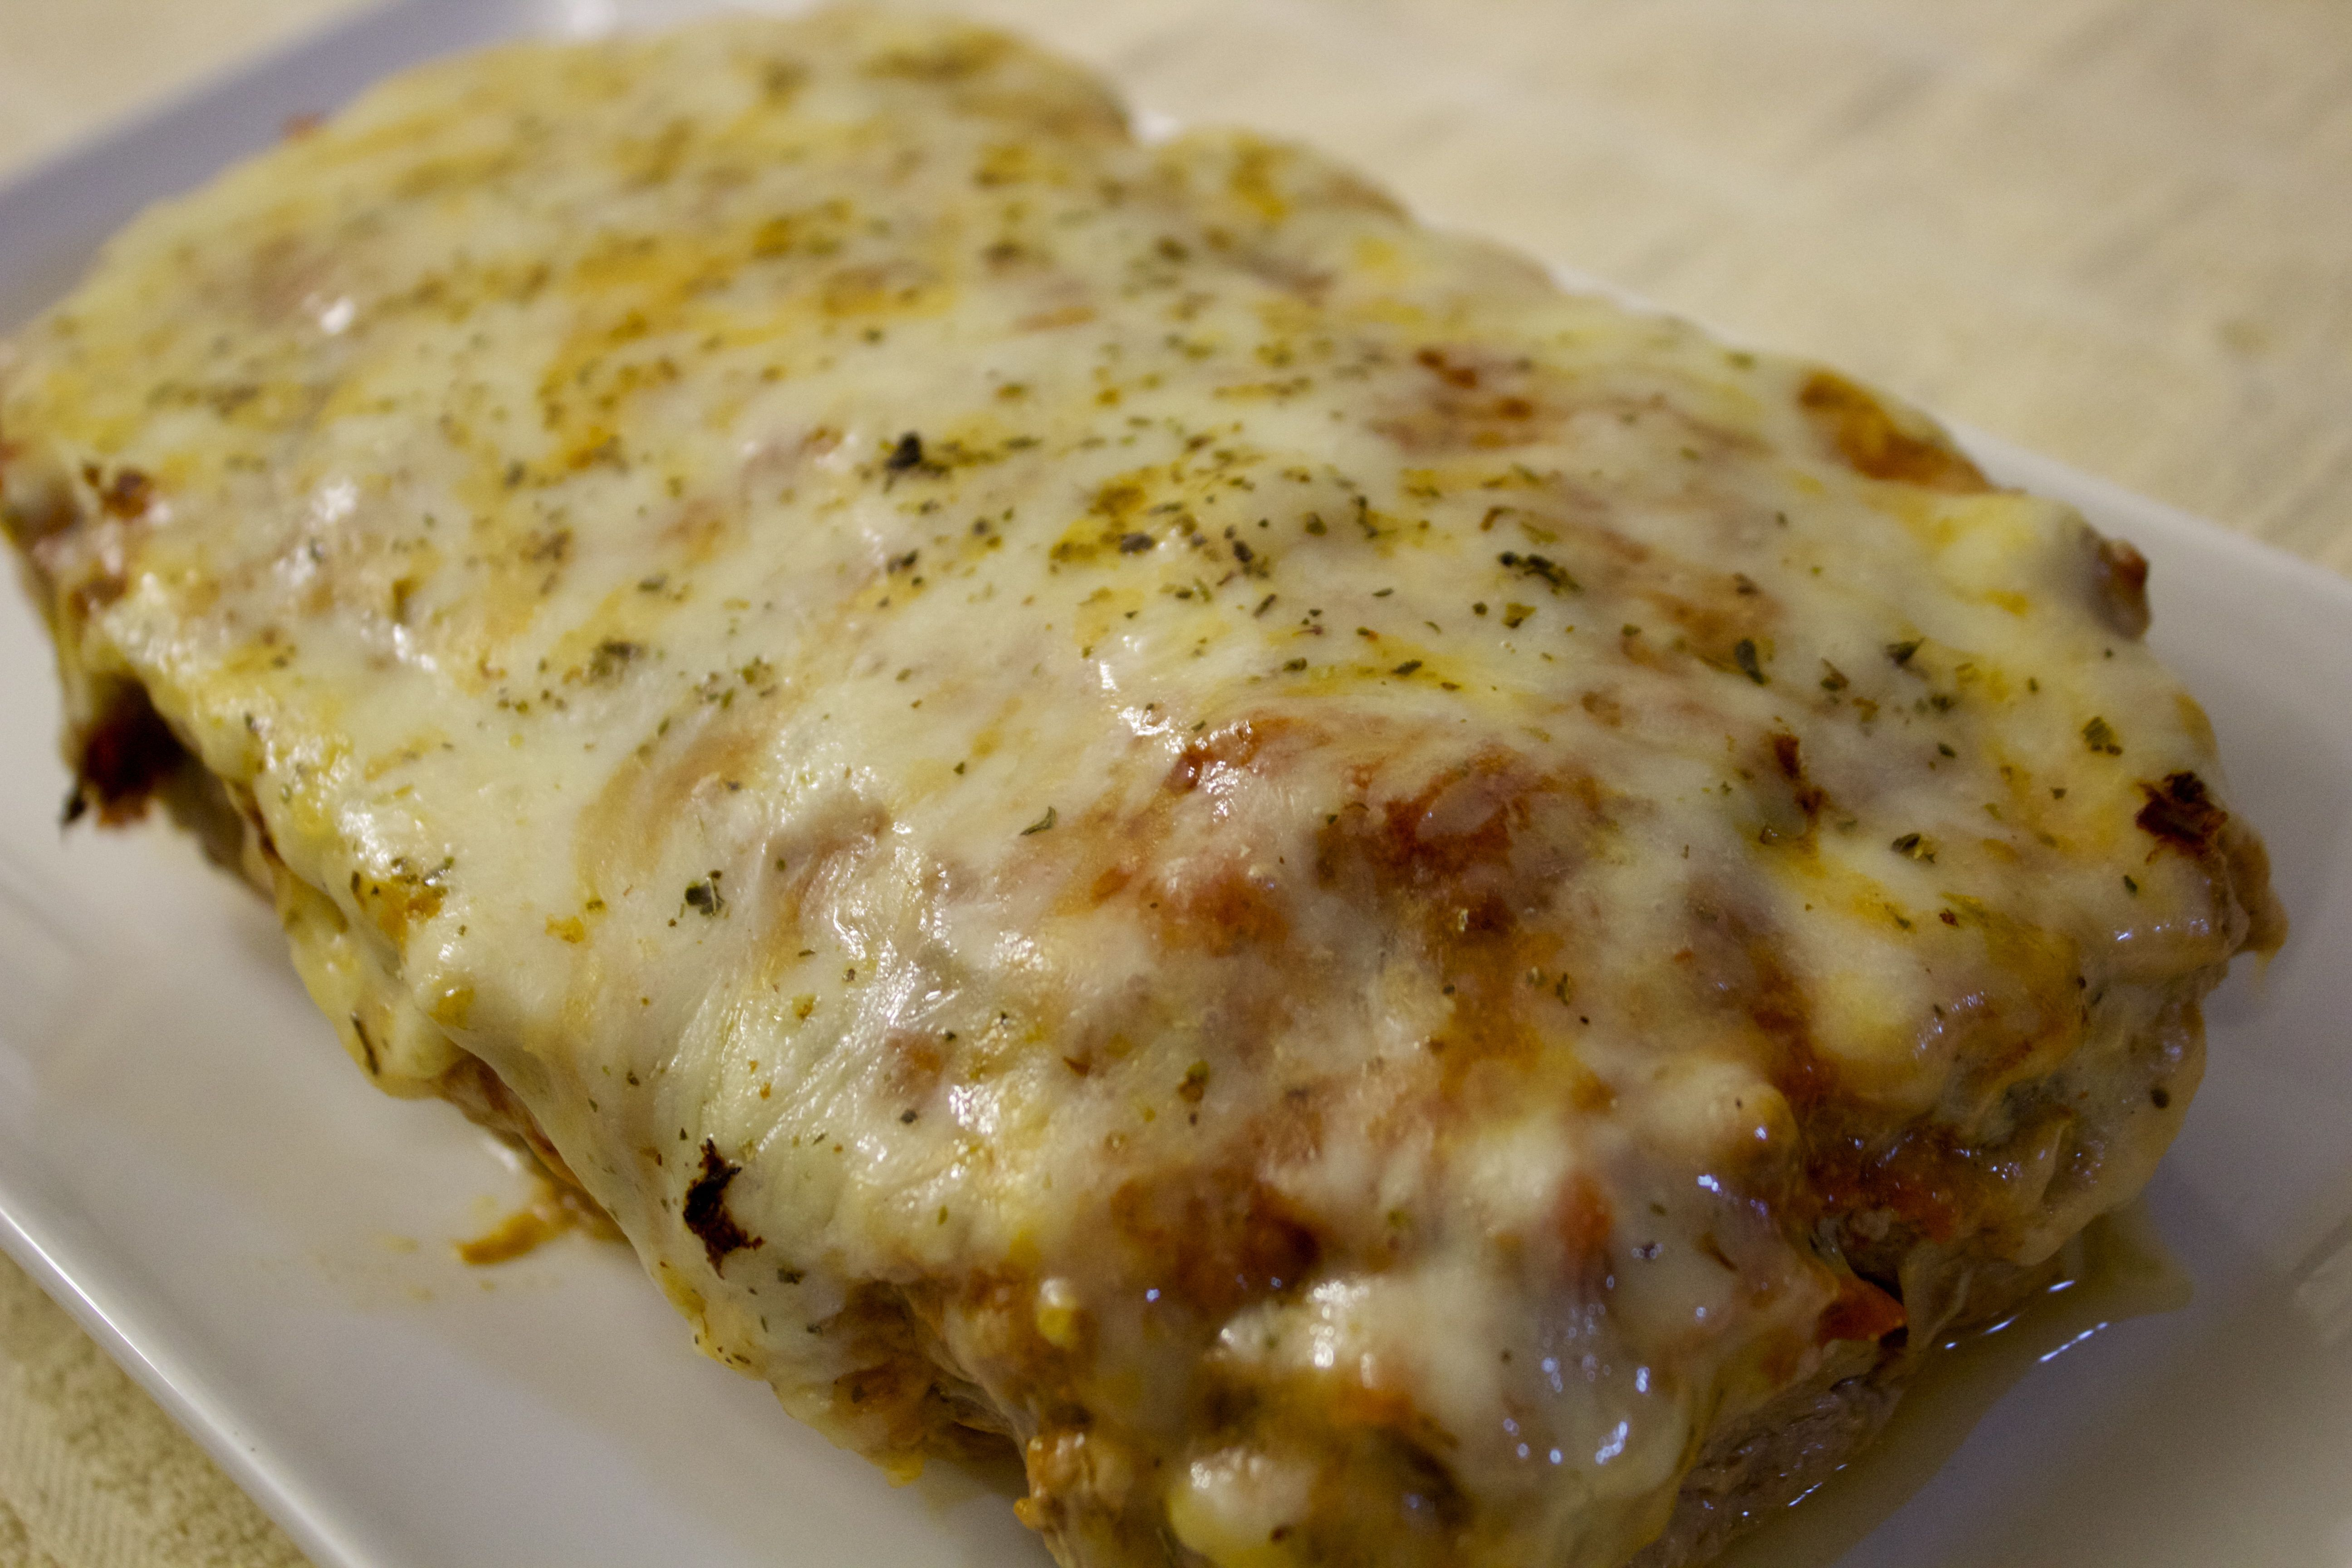 Cheesy and tender meatloaf parmesan.